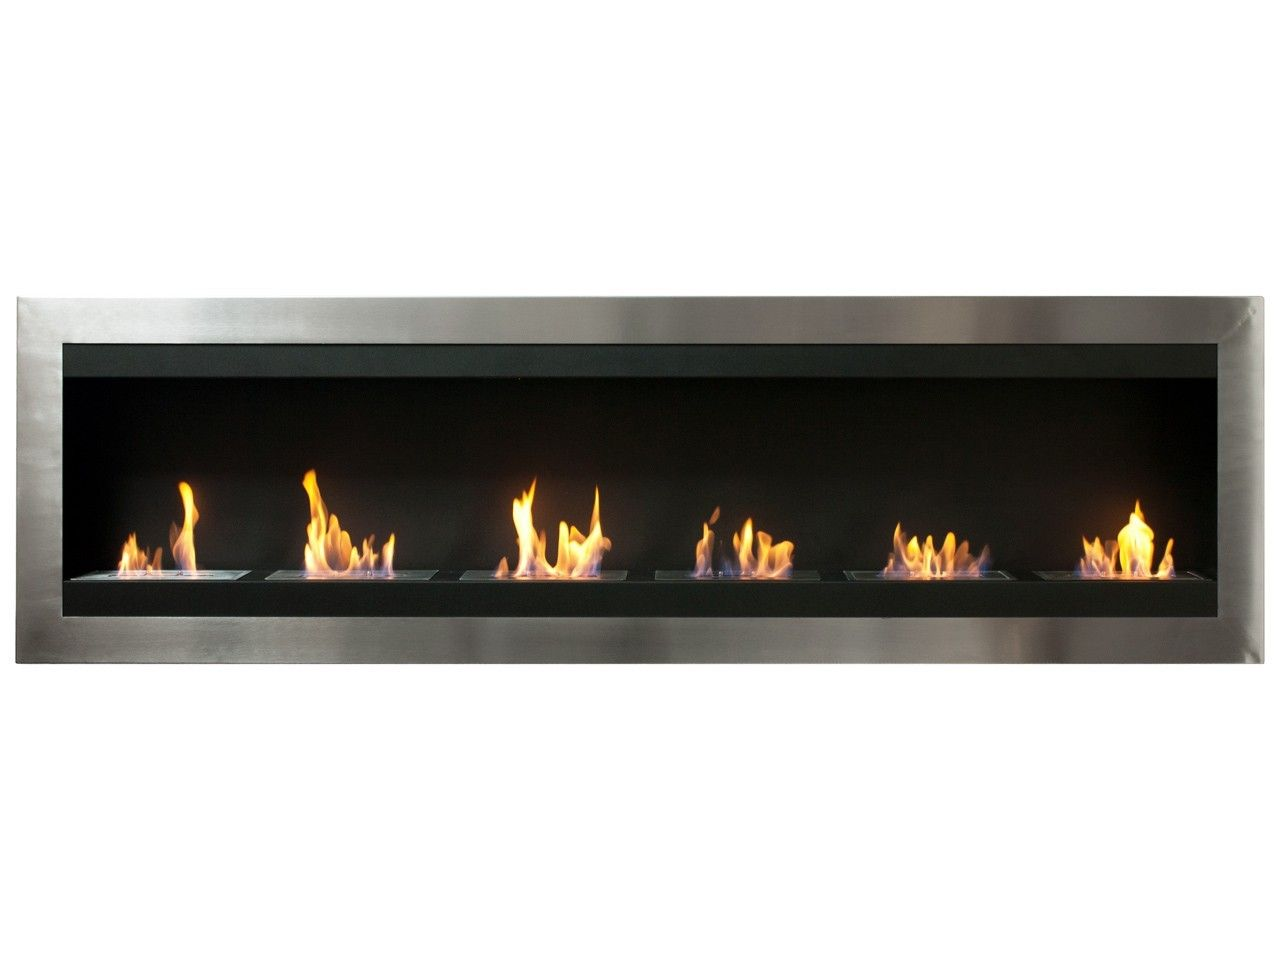 Ethanol fireplace and Walls